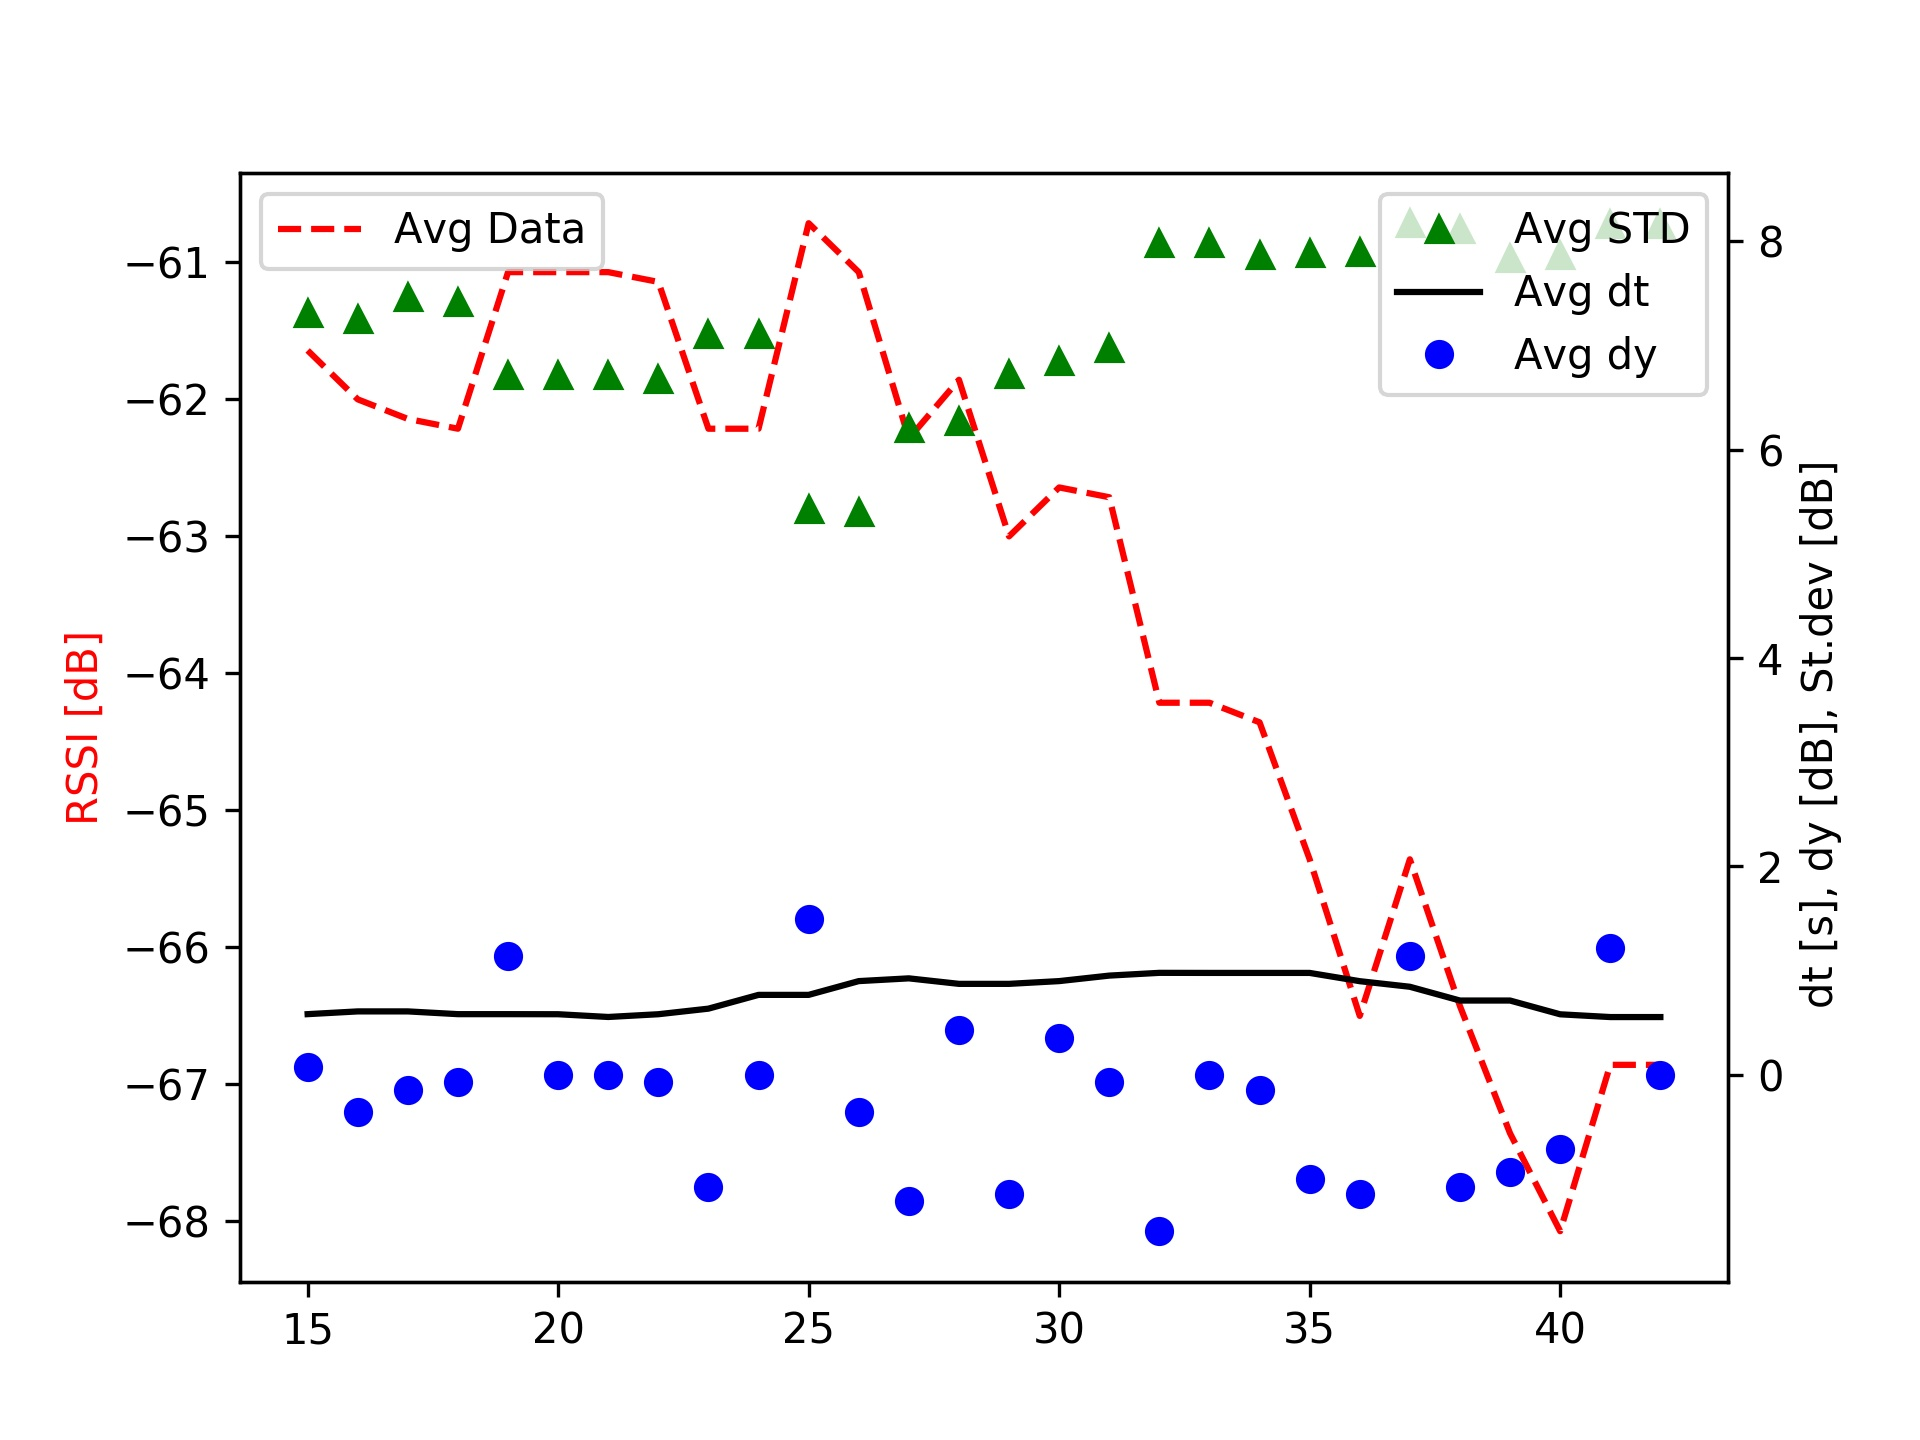 RSSI Plot with Statistics - Figure 3: This plot demonstrates the complex nature of RSSI plots. This particular plot consists of 30 seconds of RSSI data averaged every 15 samples. The transmitter was placed about 3 meters away from the receiver and was in open air. Notice the sudden decline (despite there being no change in surrounding). This type of behavior makes analysis of RSSI difficult.